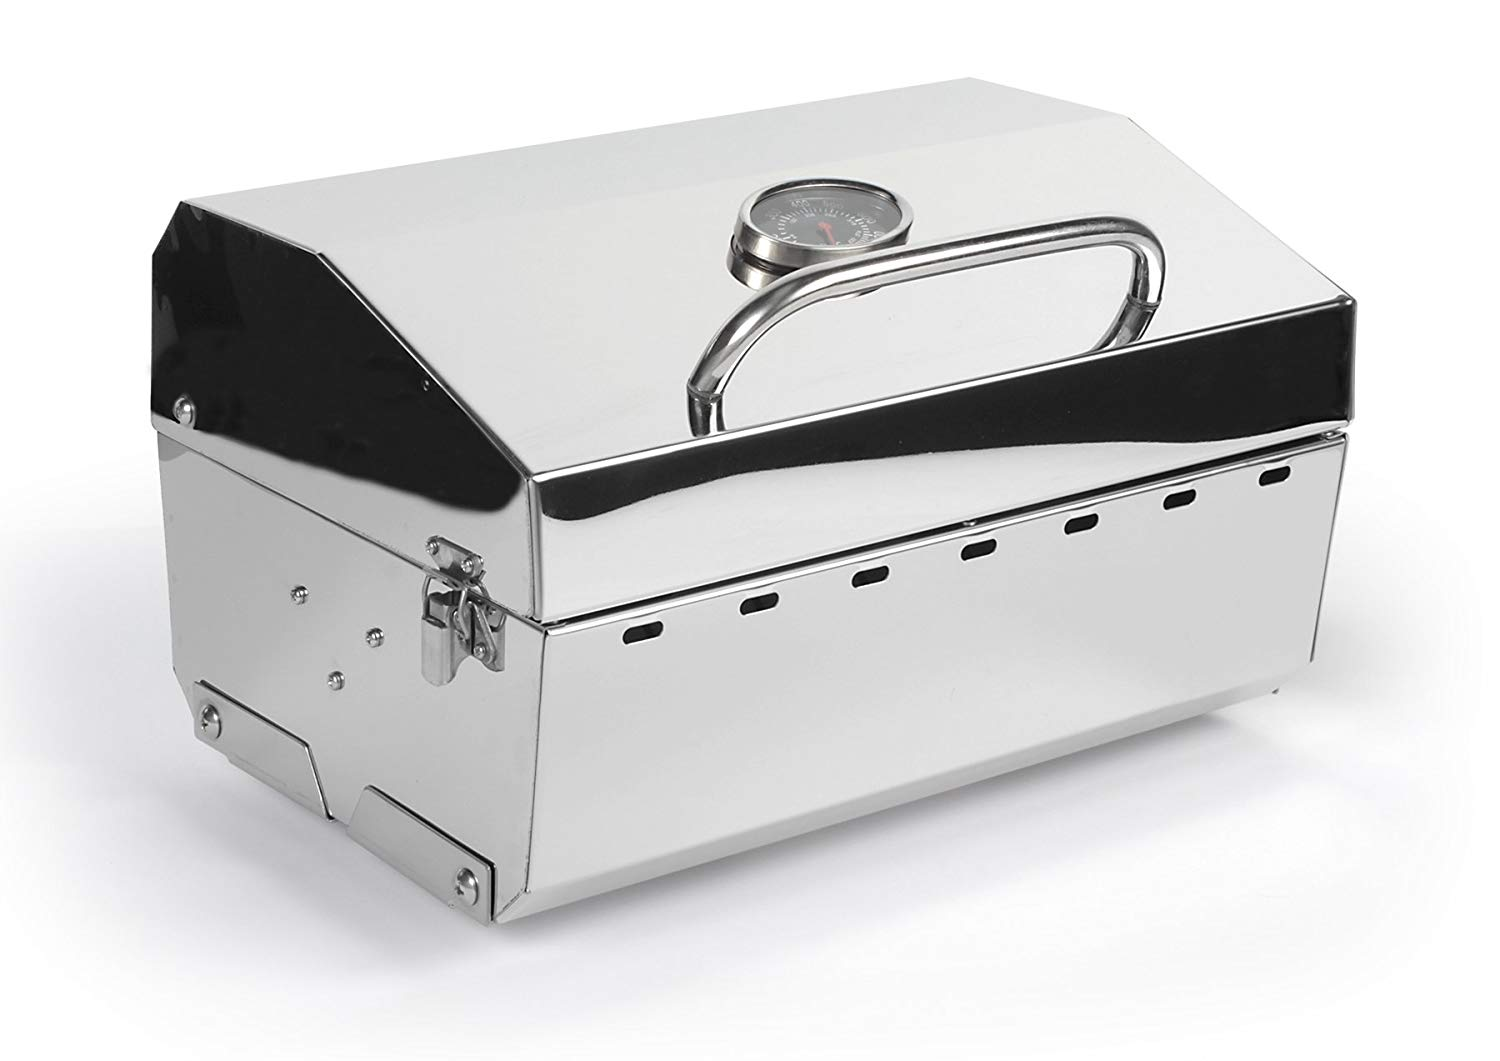 Barbeque Griller For Sale - Buy Electric, Charcoal and Propane Grills At Best Prices